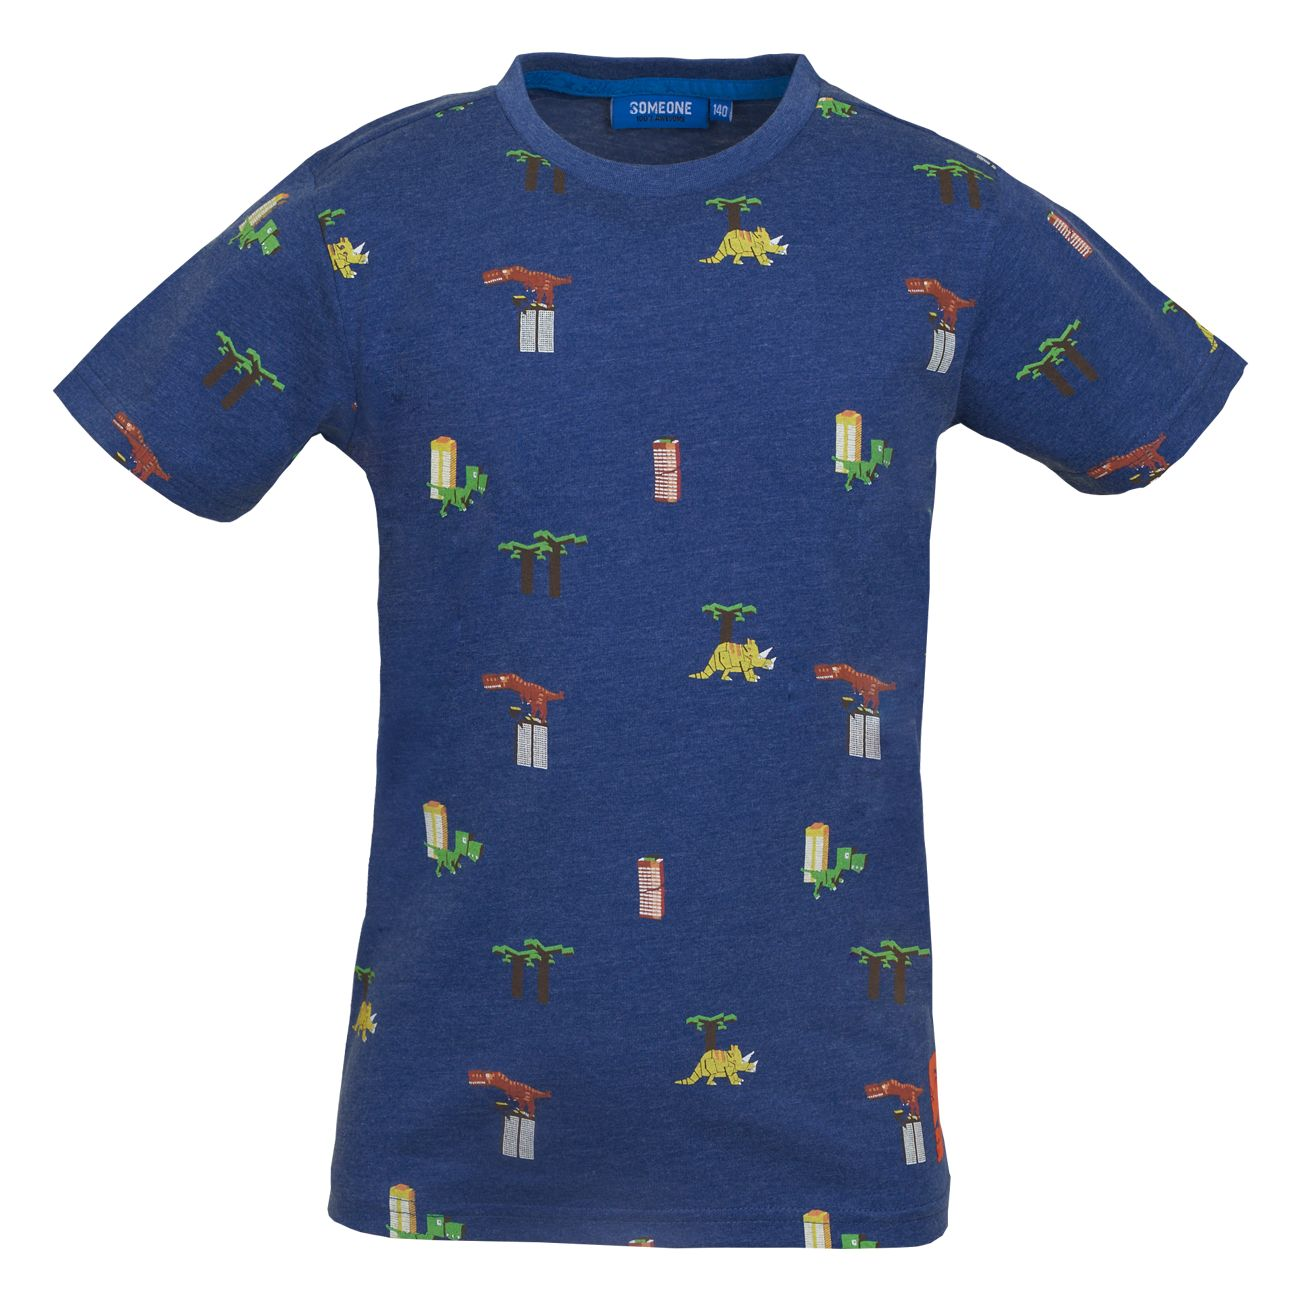 T-Shirt Dinos 122 Blue SOMEONE 100% Awesome